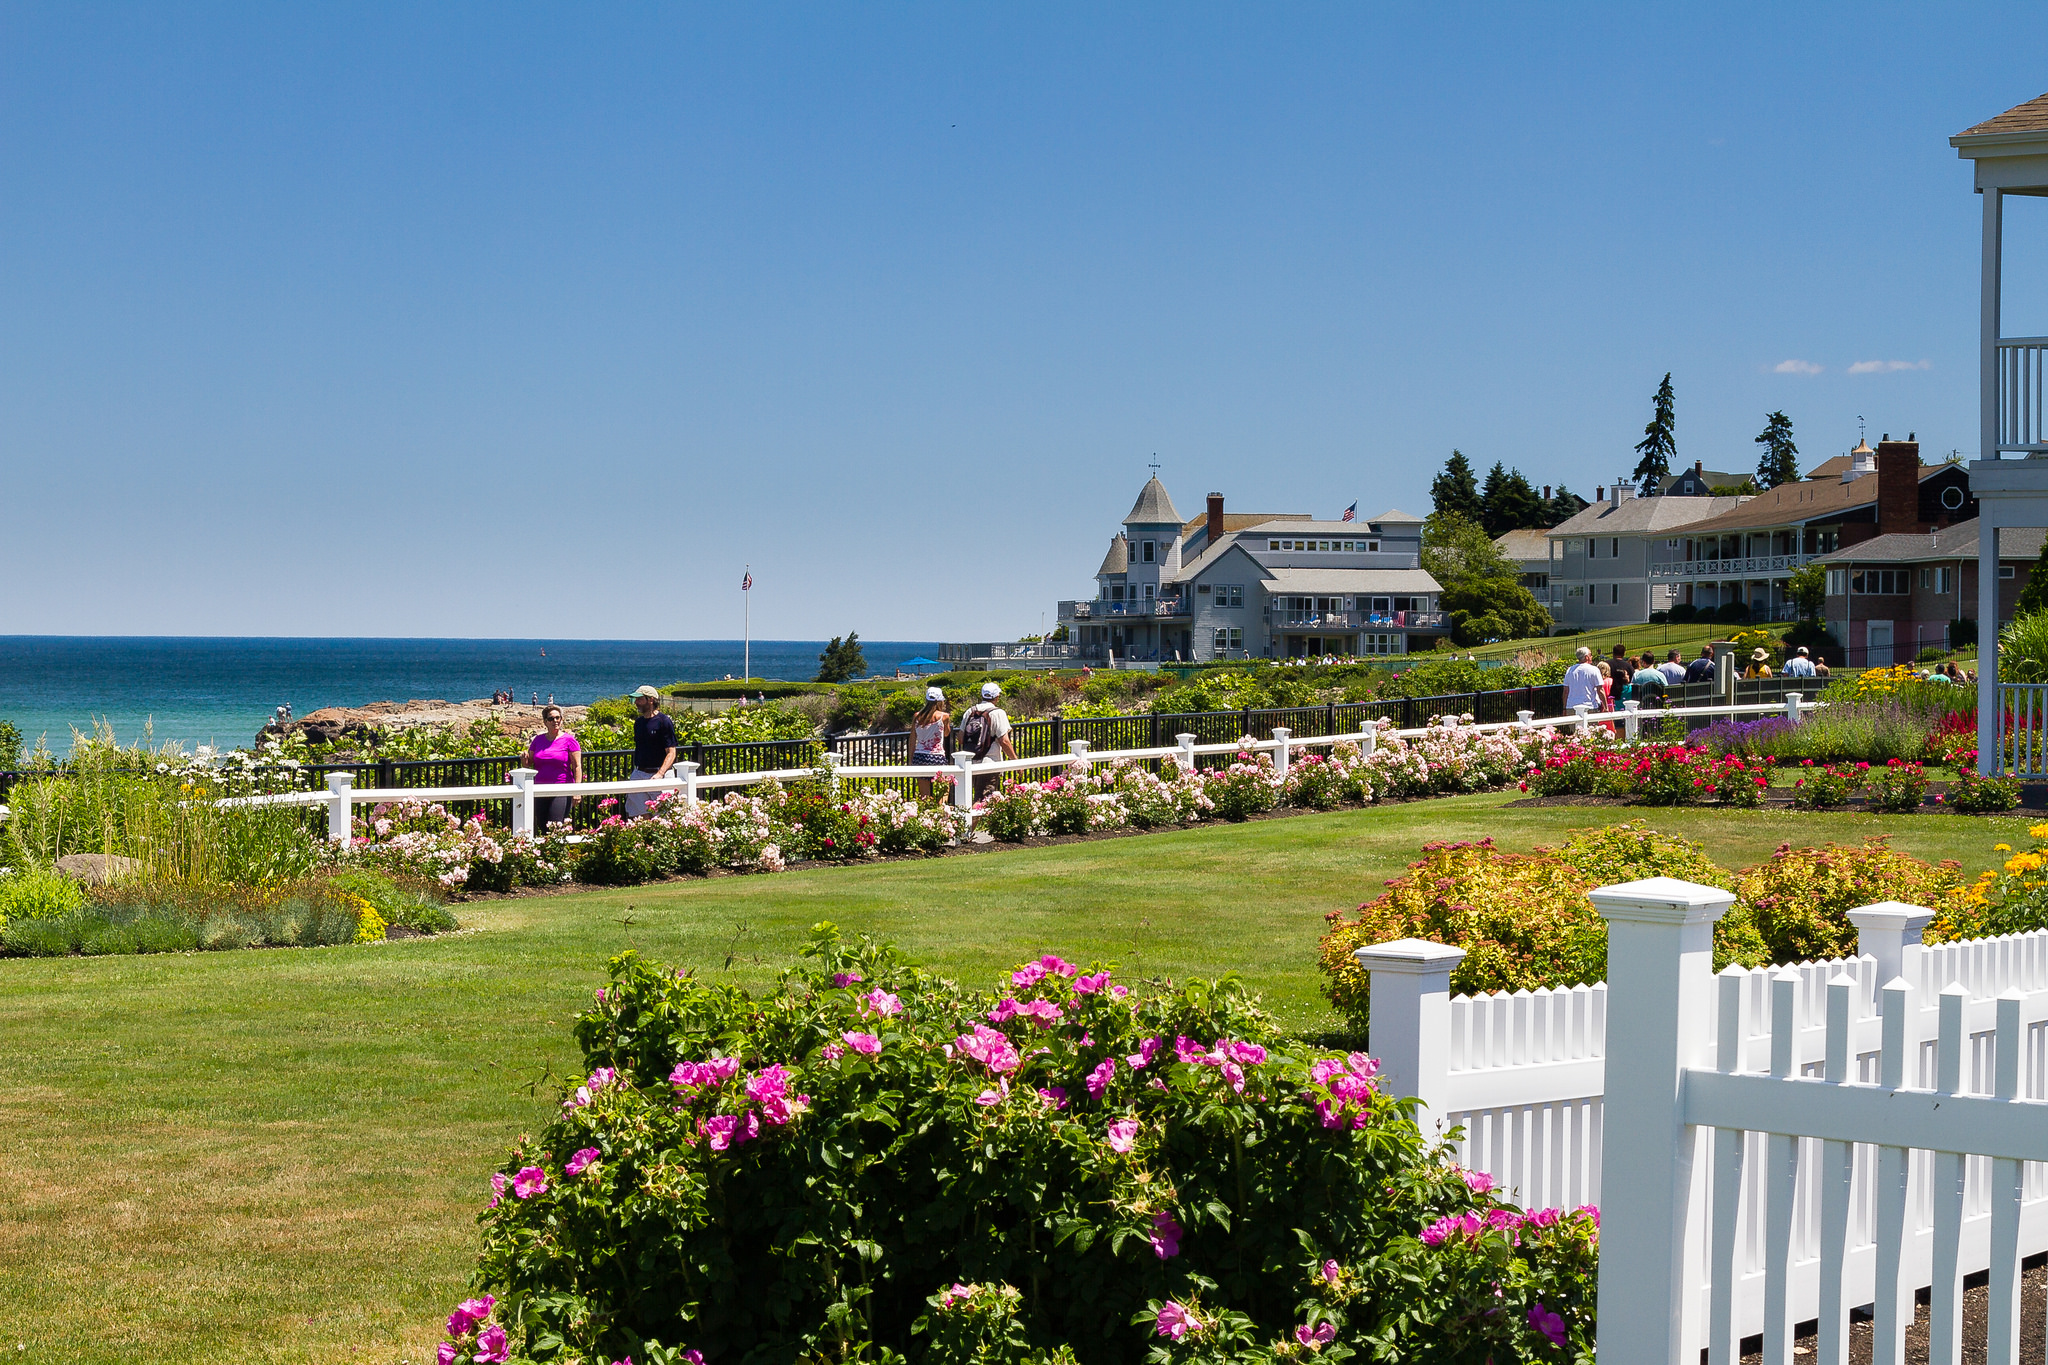 trips to maine, coastal towns in maine